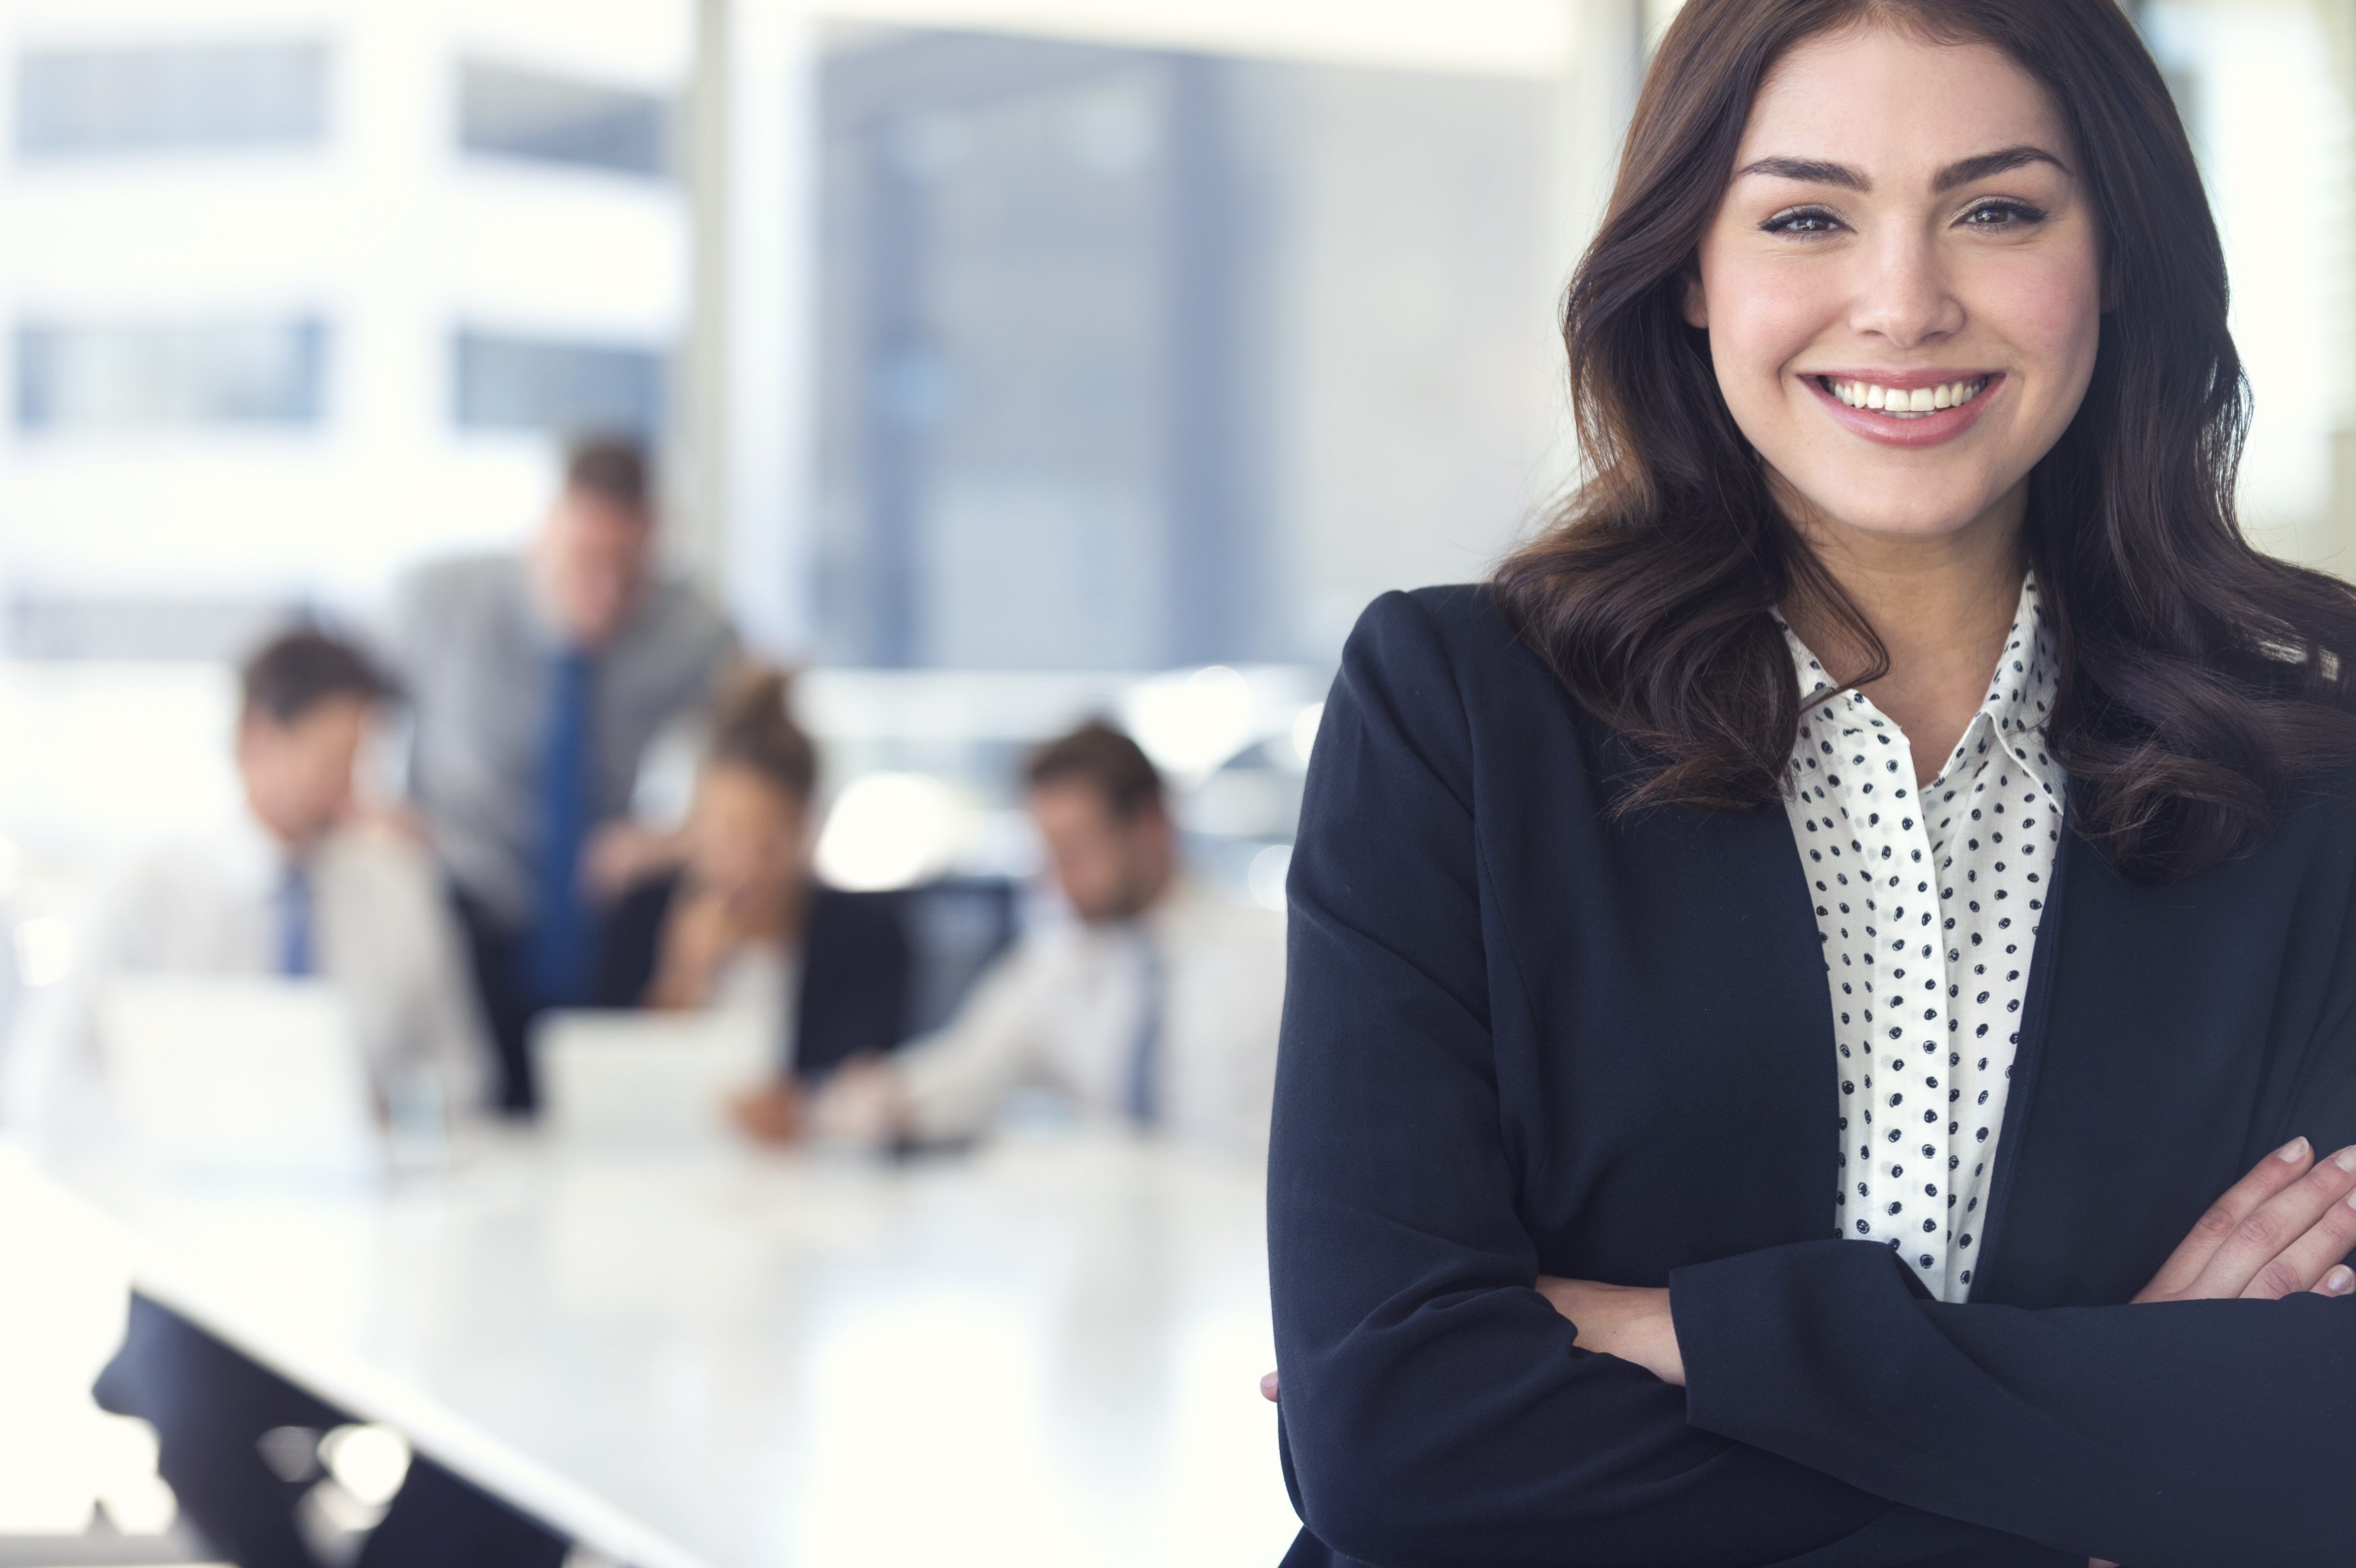 Woman in office boardroom smiling